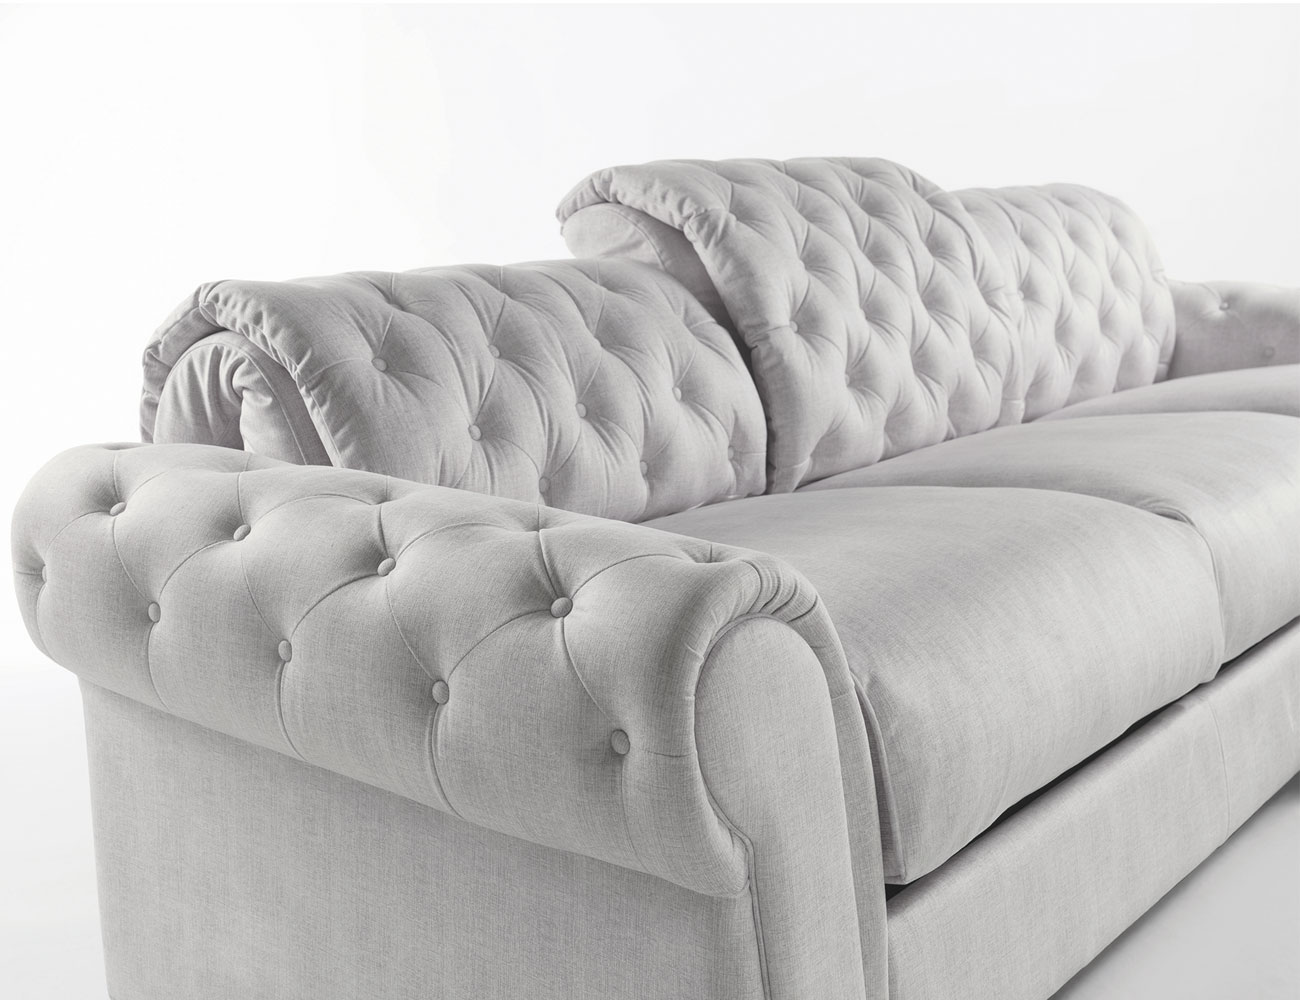 Sofa chaiselongue gran lujo decorativo capitone blanco tela 119